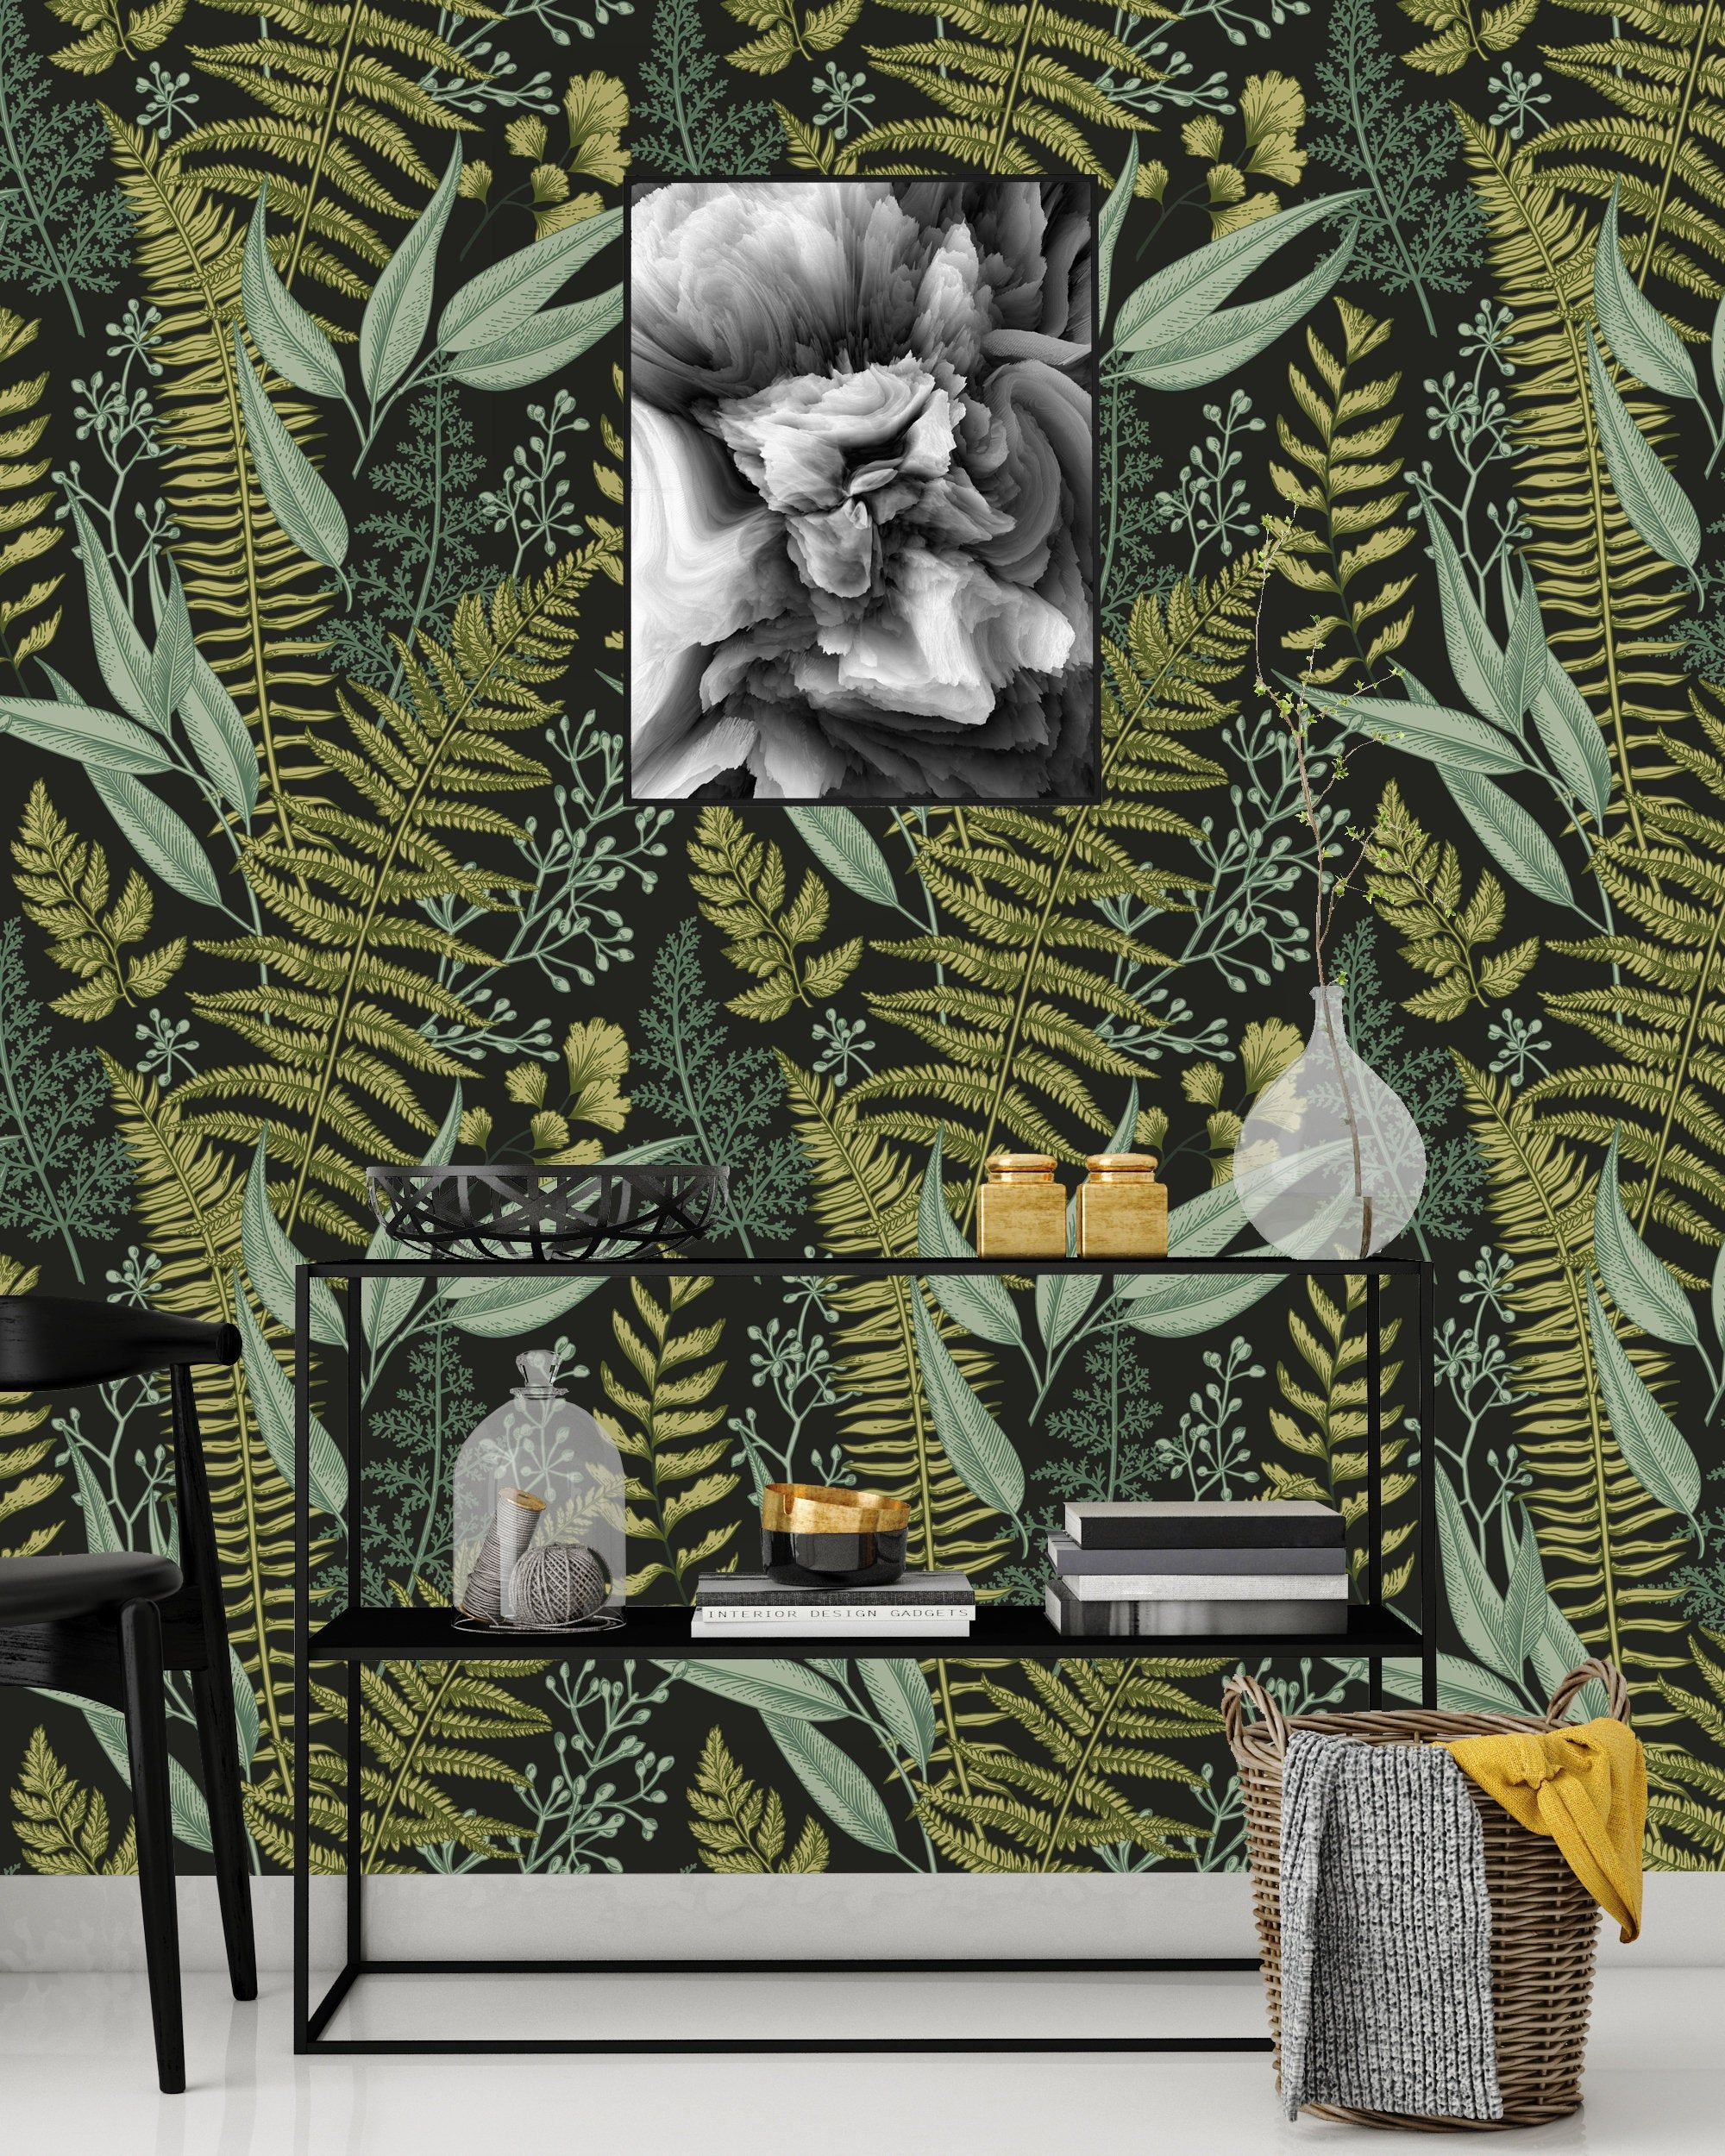 Botanical Ferns Removable Wallpaper Peel & Stick